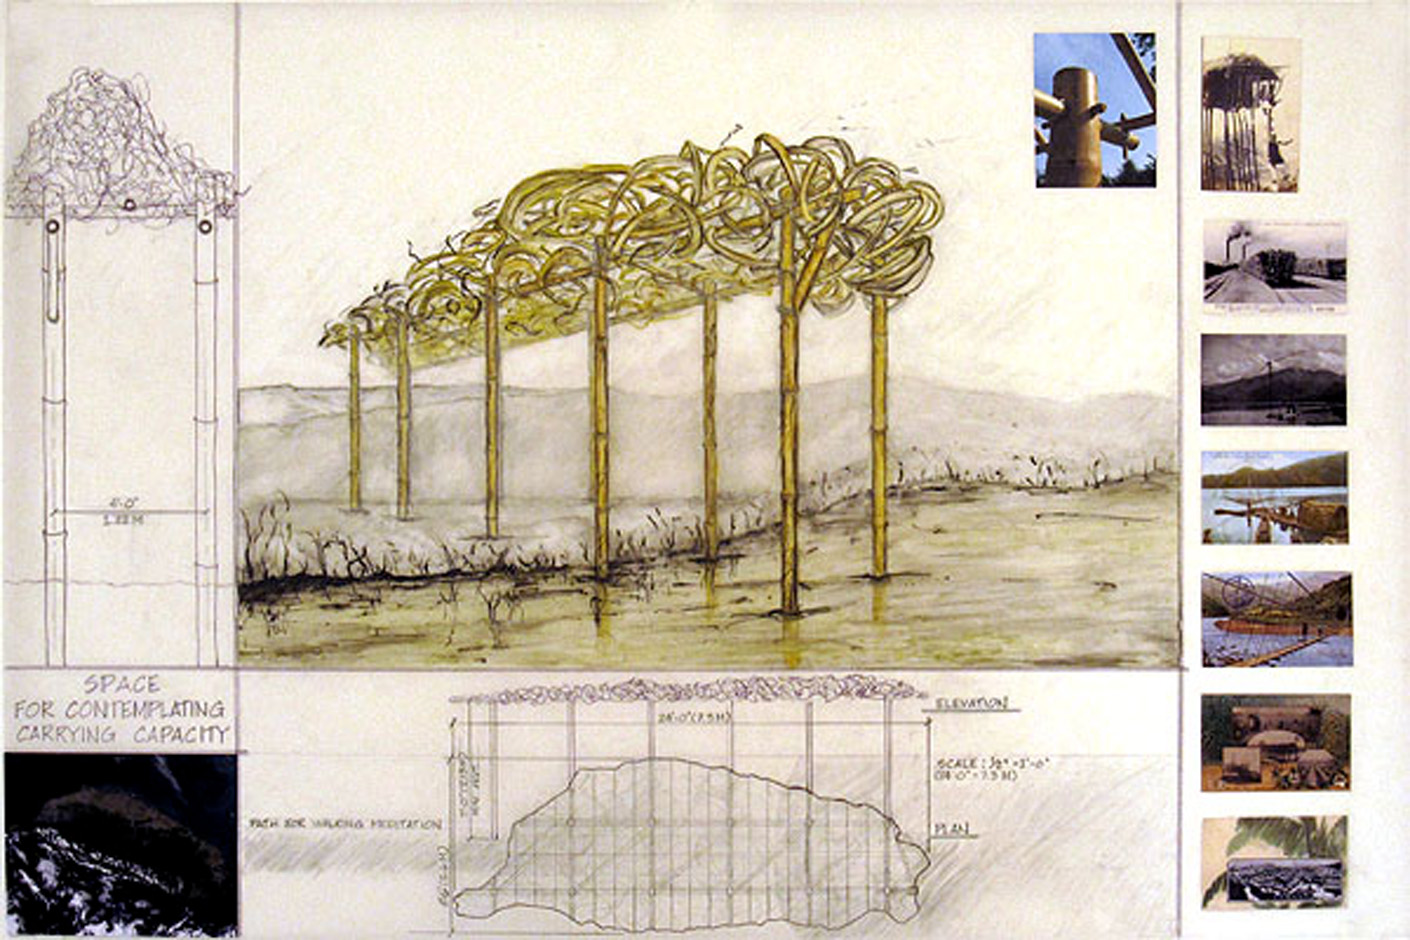 Proposal Drawing #2  Space for Contemplating Carrying Capacity: The Taiwan Tangle  2009  Proposal for Guandu Nature Park International Sculpture Festival, Taipei, Taiwan.  Ink and mixed media on drafting film.